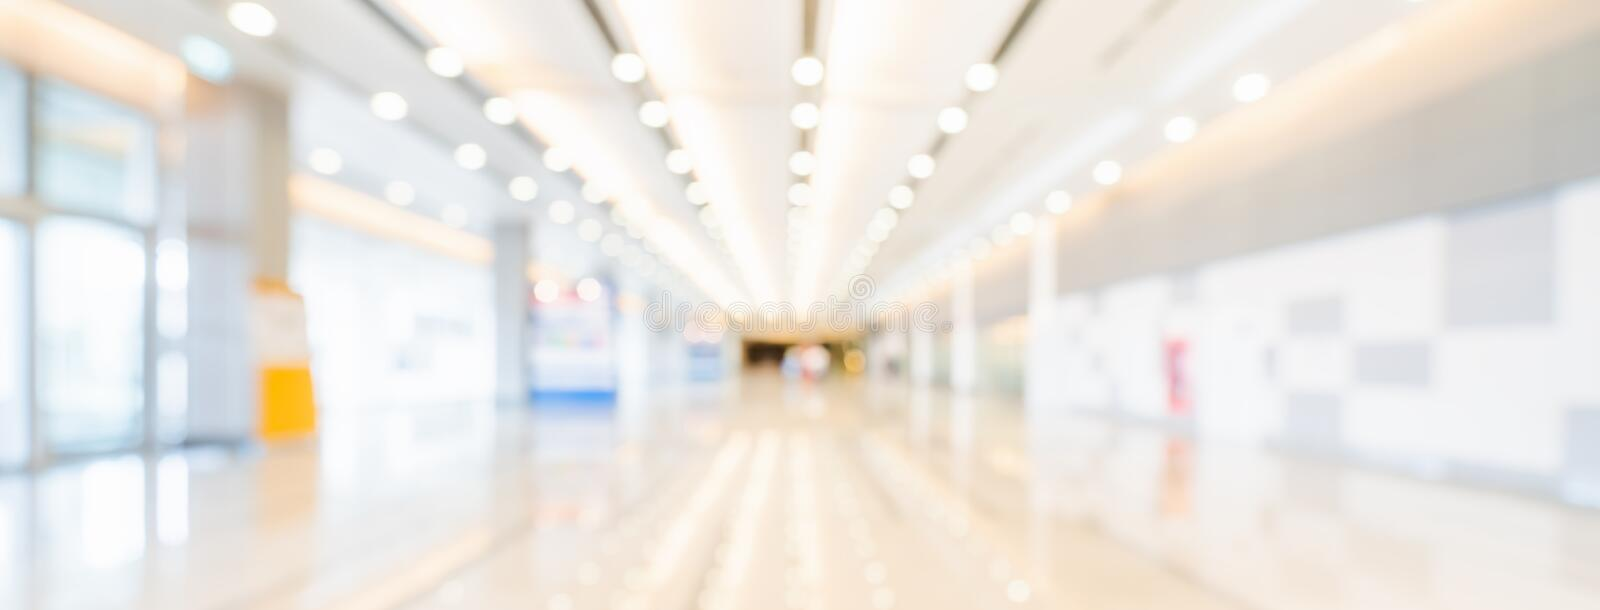 Blurred bokeh panoramic banner background of exhibition hall or convention center hallway. Business trade show event. Modern interior architecture, or royalty free stock images